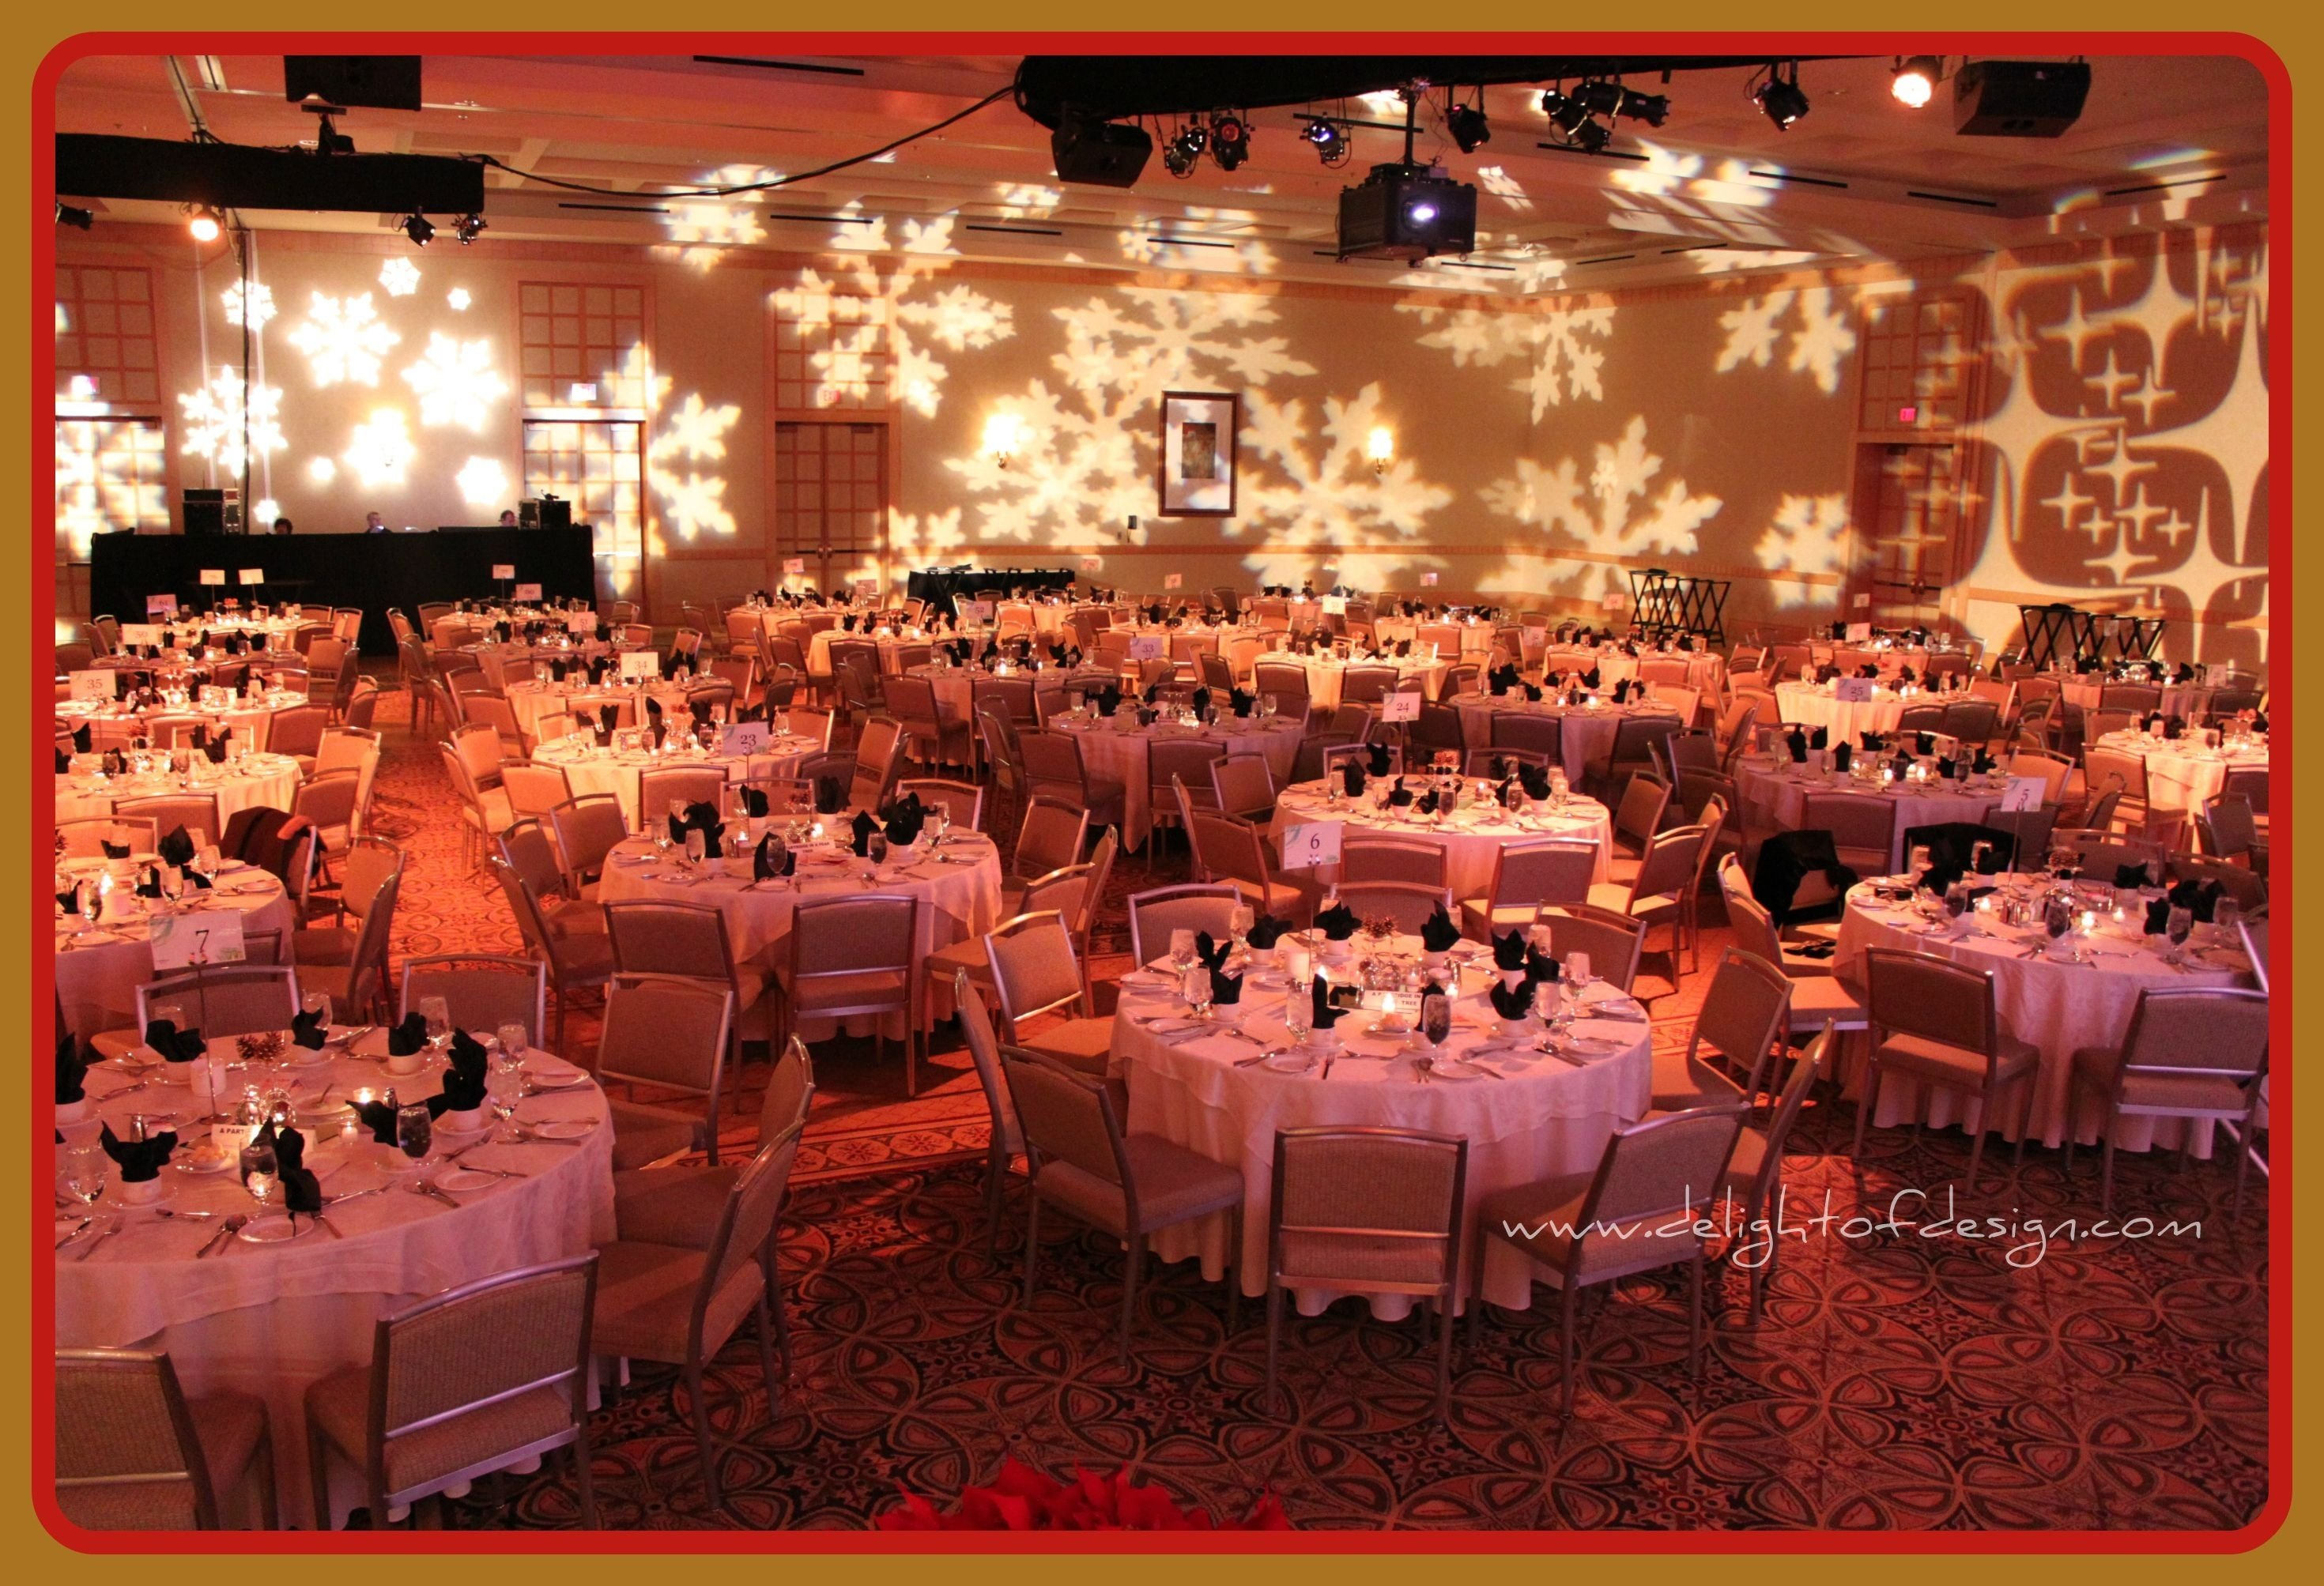 10 Fashionable Lds Ward Christmas Party Ideas decorating a church for christmas every year our church puts on a 2020